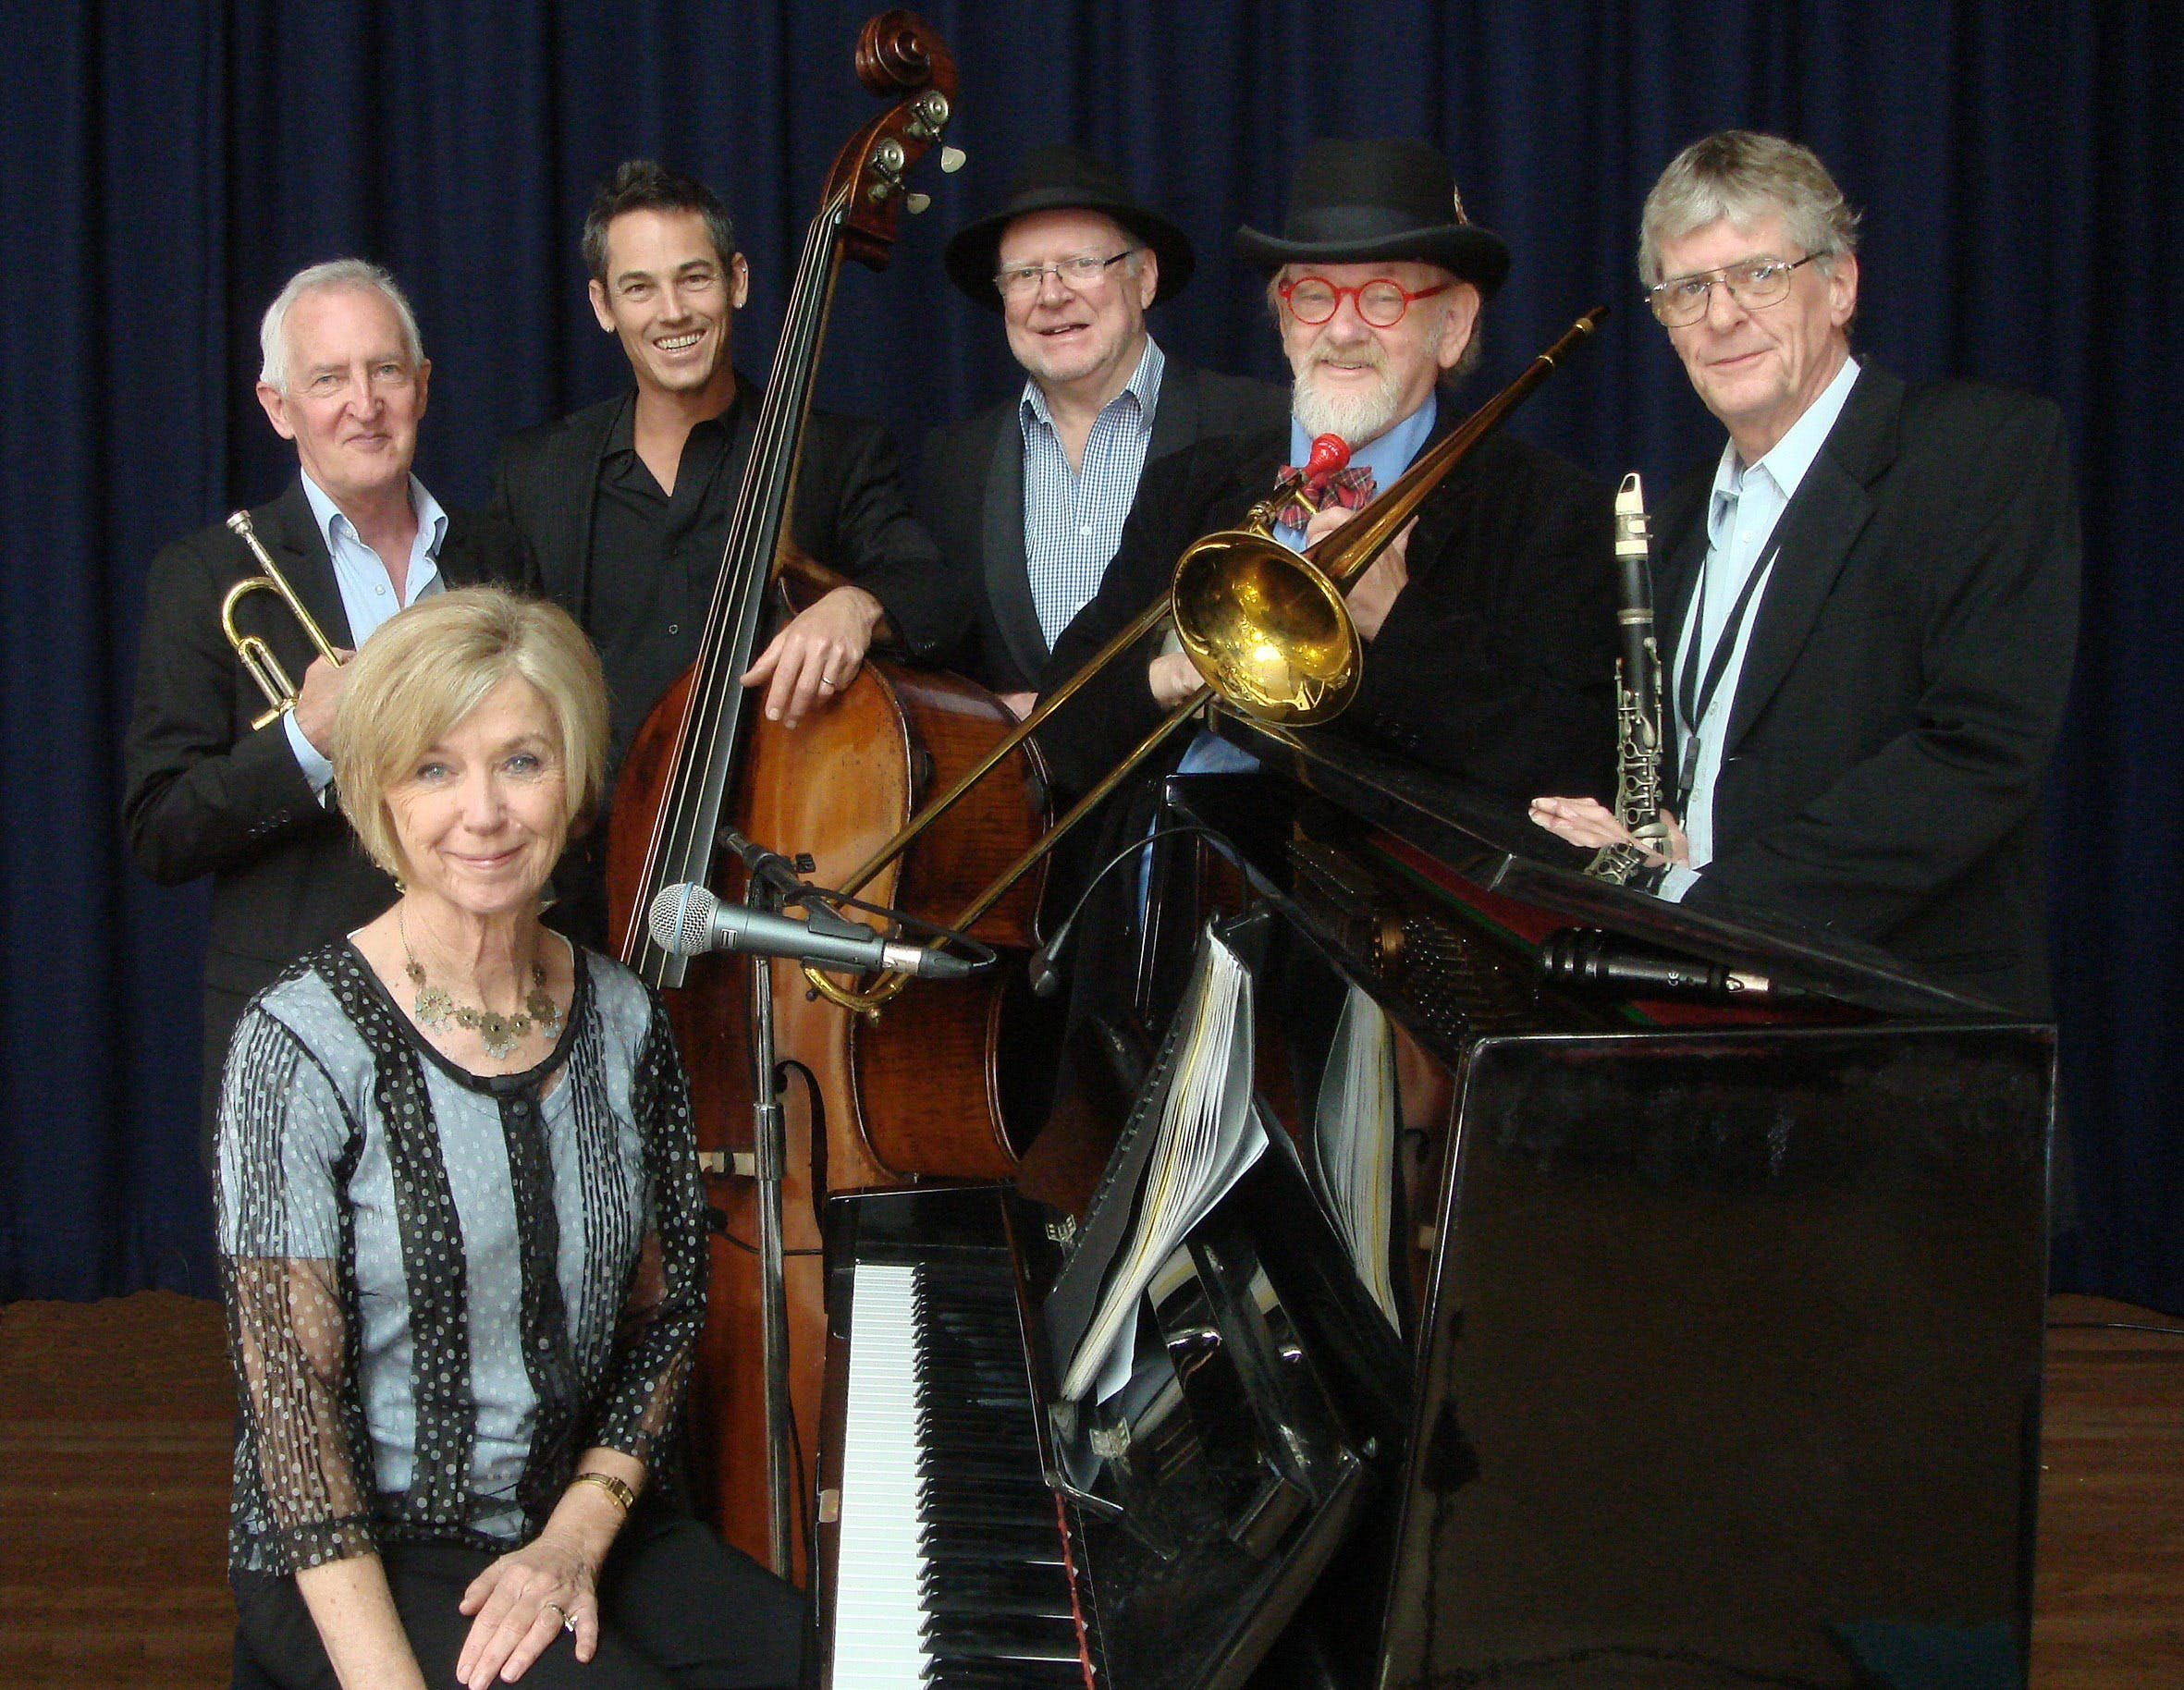 The Caxton Street Jazz Band in the Swigmore Hall at Robert Channon Wines - Accommodation Search